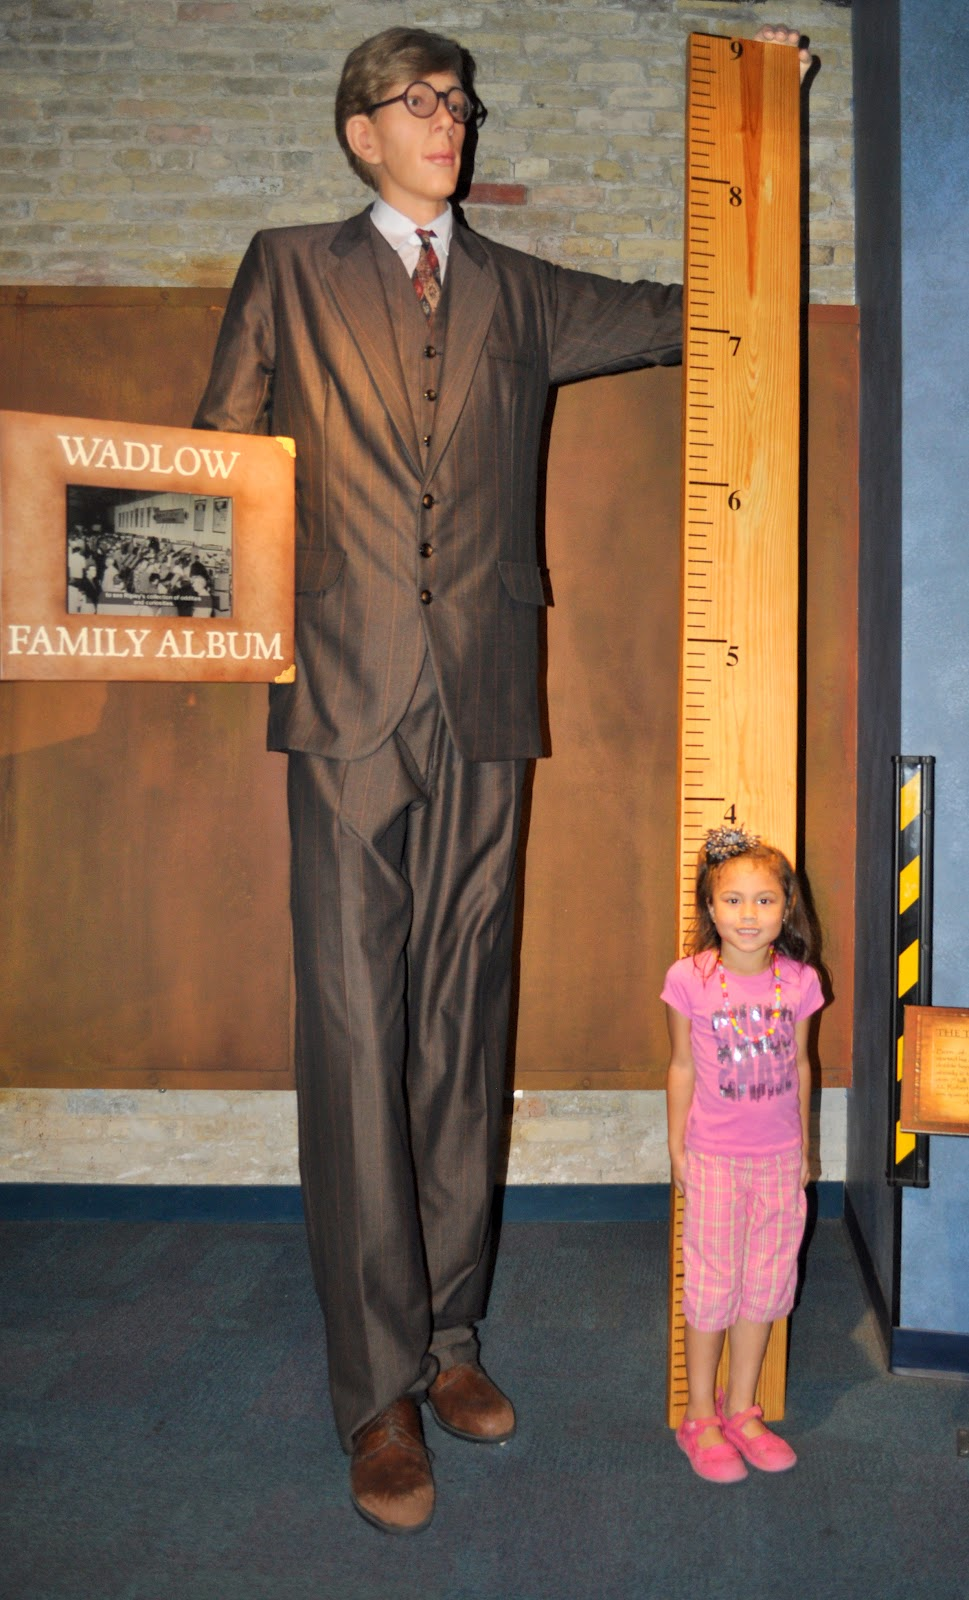 worksheet 8 Ft In Inches similiar 8 foot people keywords photos were taken during our visit to ripleys believe it or not robert wadlow feet 11 inches